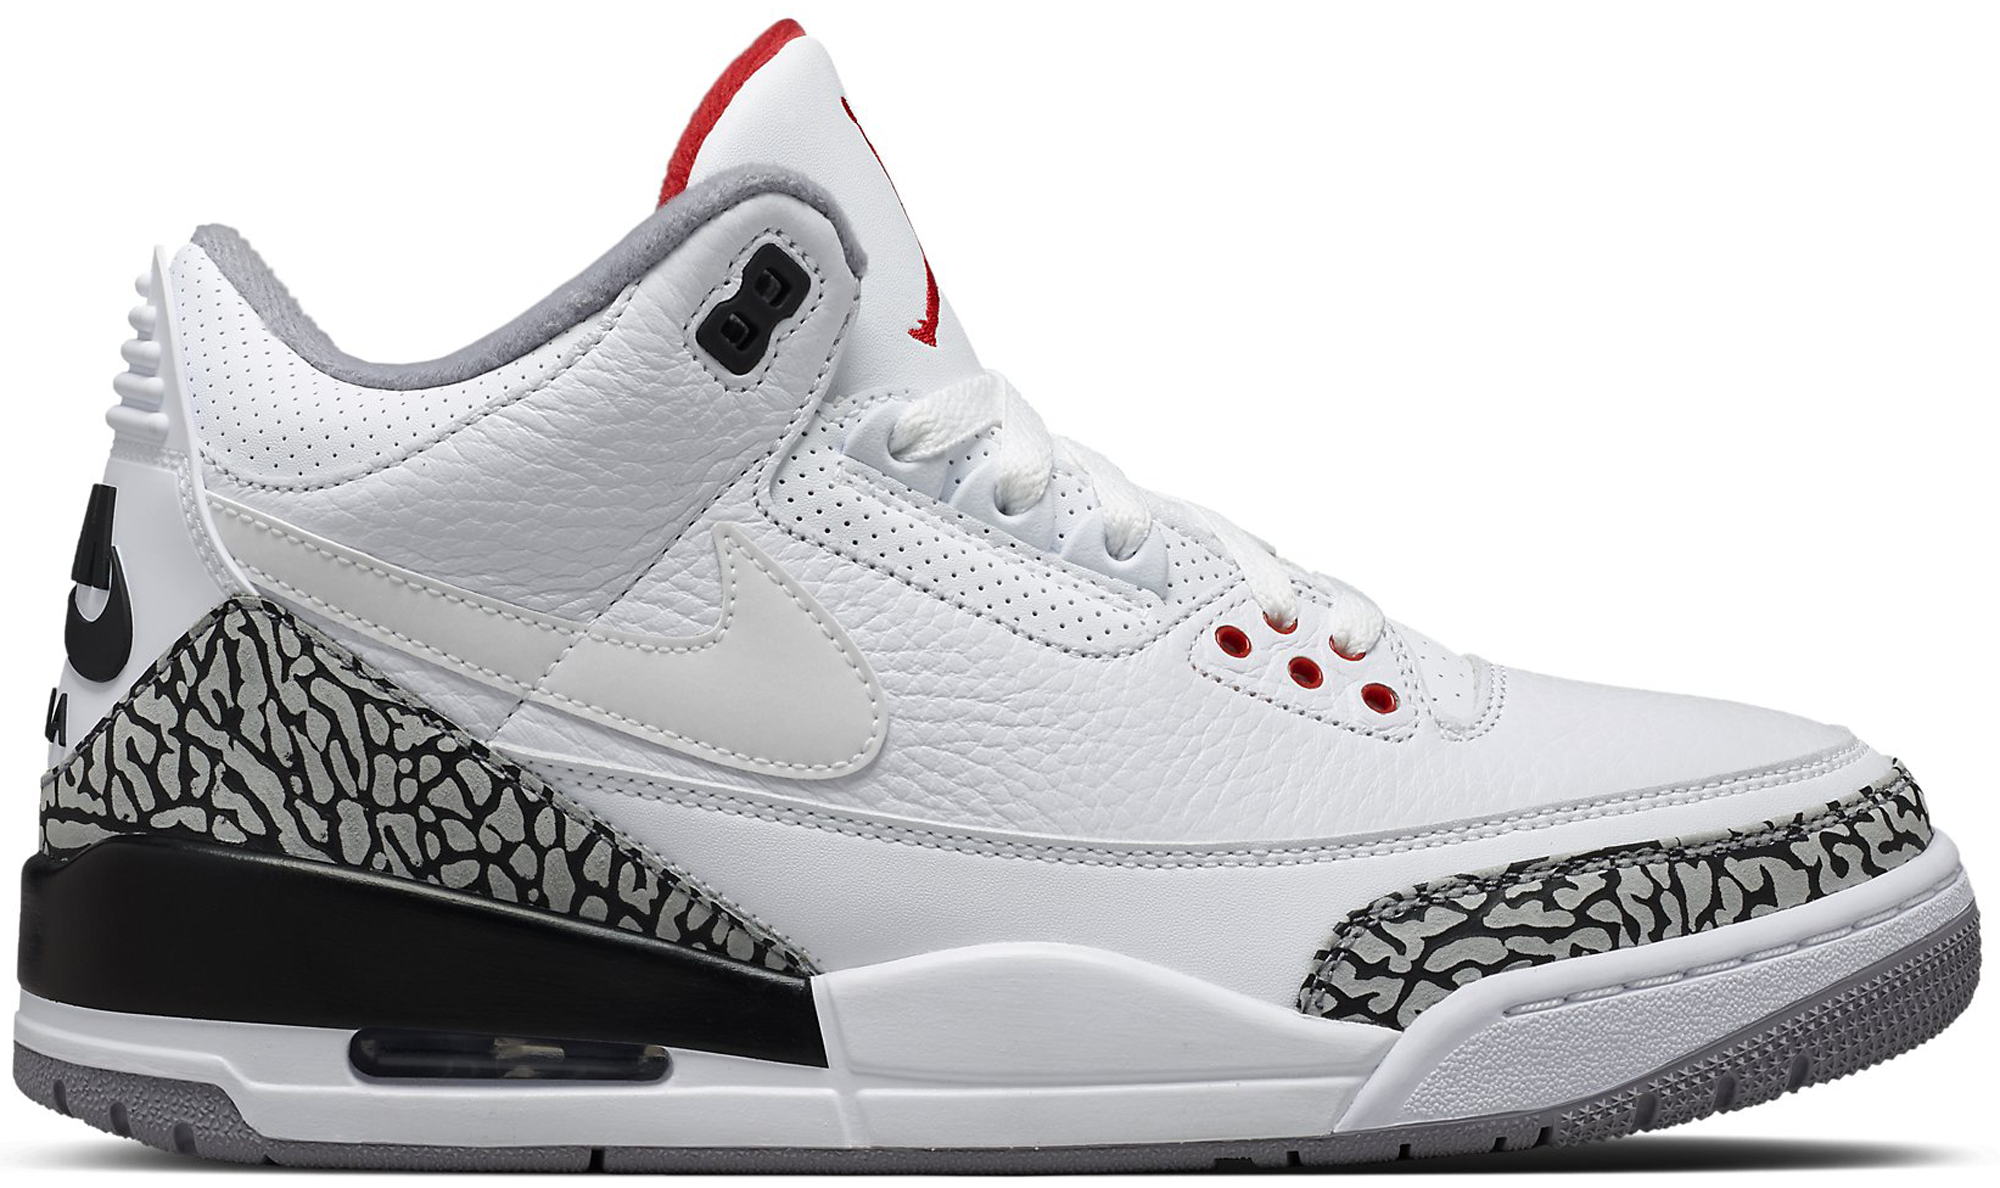 Air Jordan 3 Retro JTH White Cement